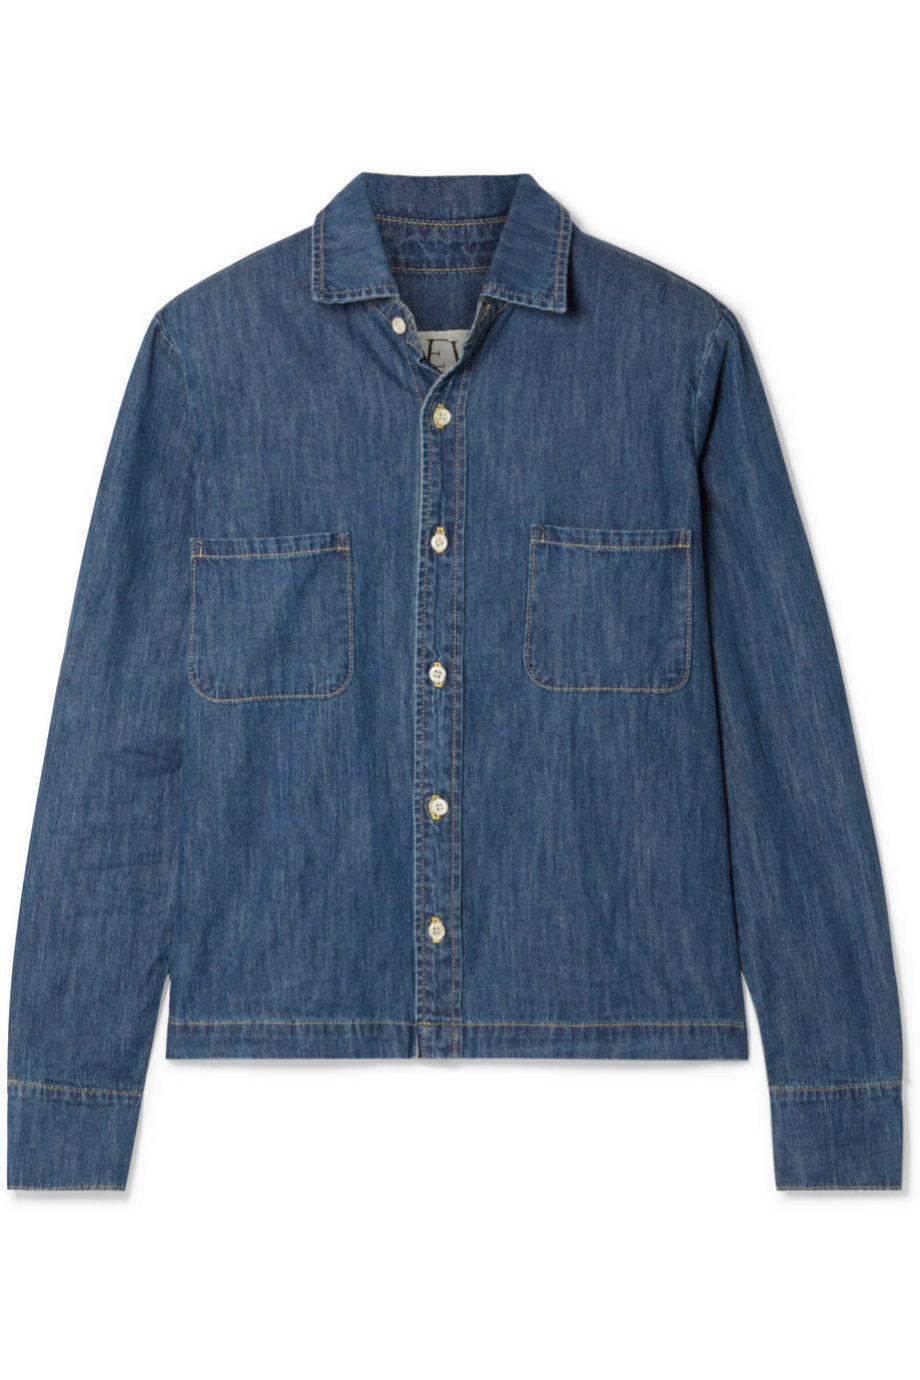 Camisa denim de Eve Denim para Net a Porter